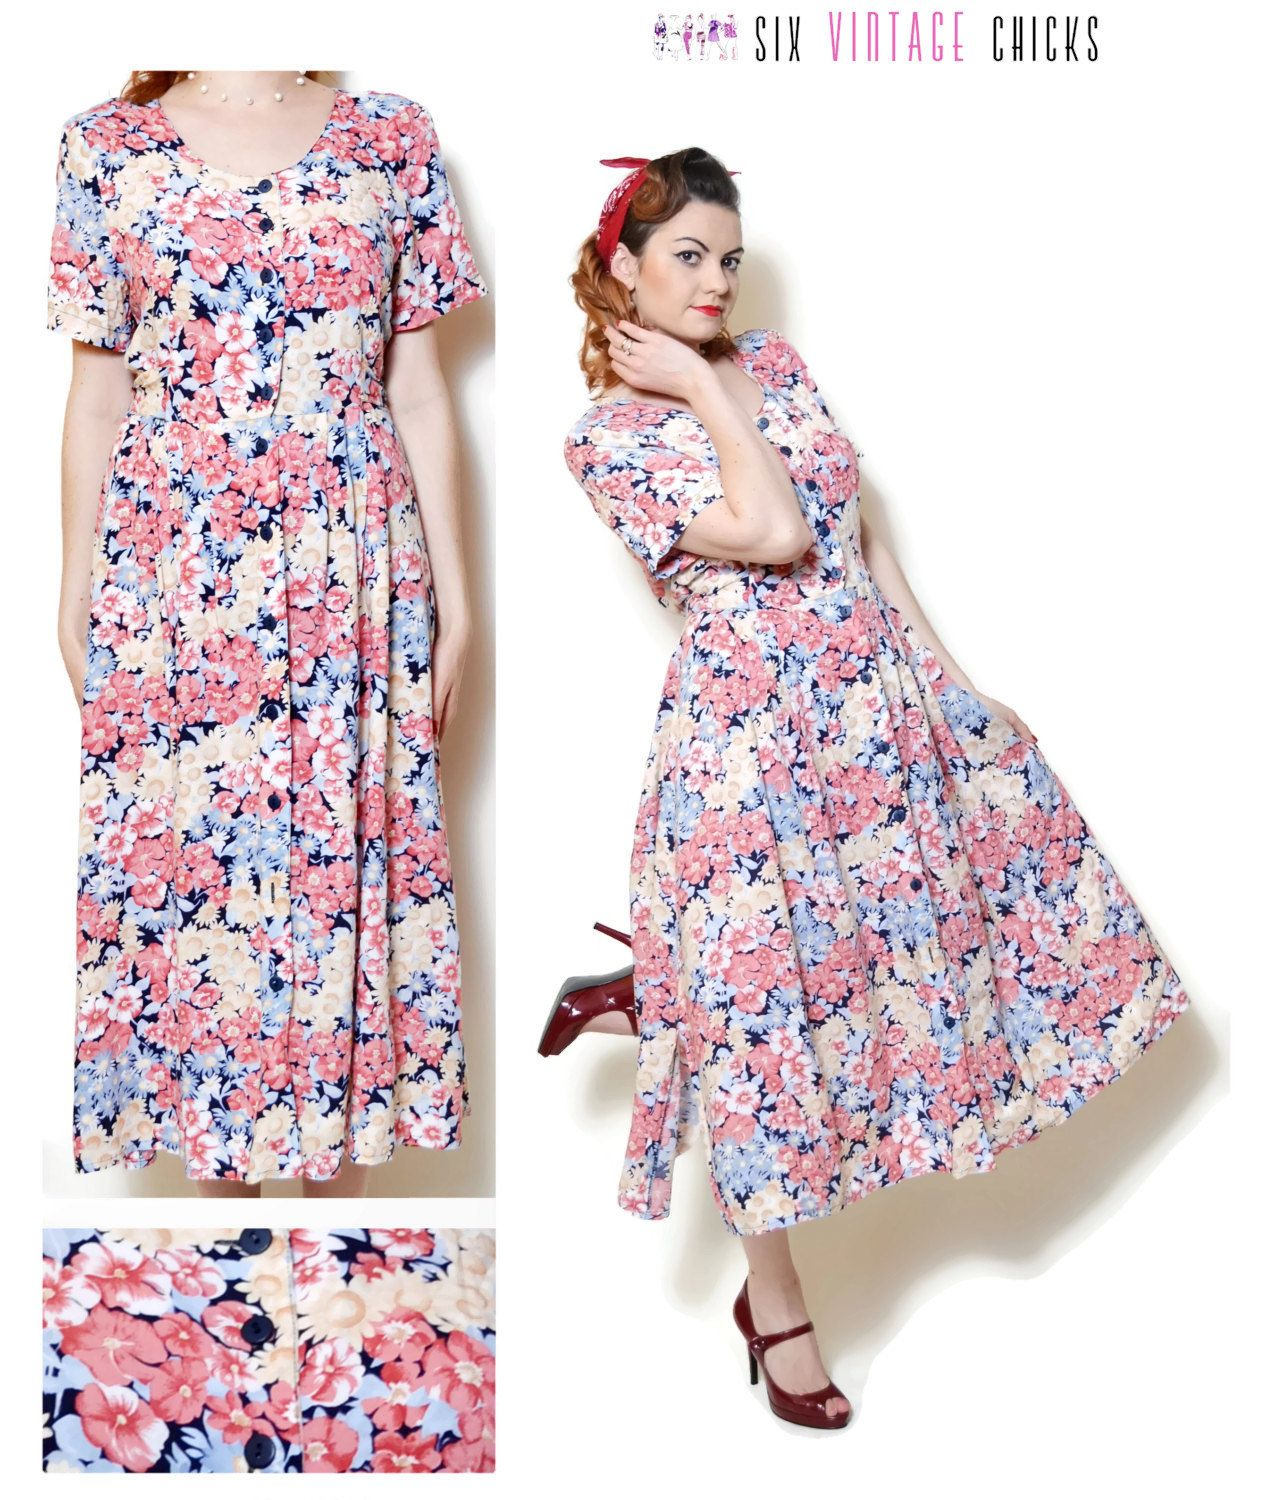 e090b6101 floral Dress women casual summer dresses hippie clothes sexy gifts vintage  clothing boho chic button down dress short sleeve 80s 90s maxi M by ...